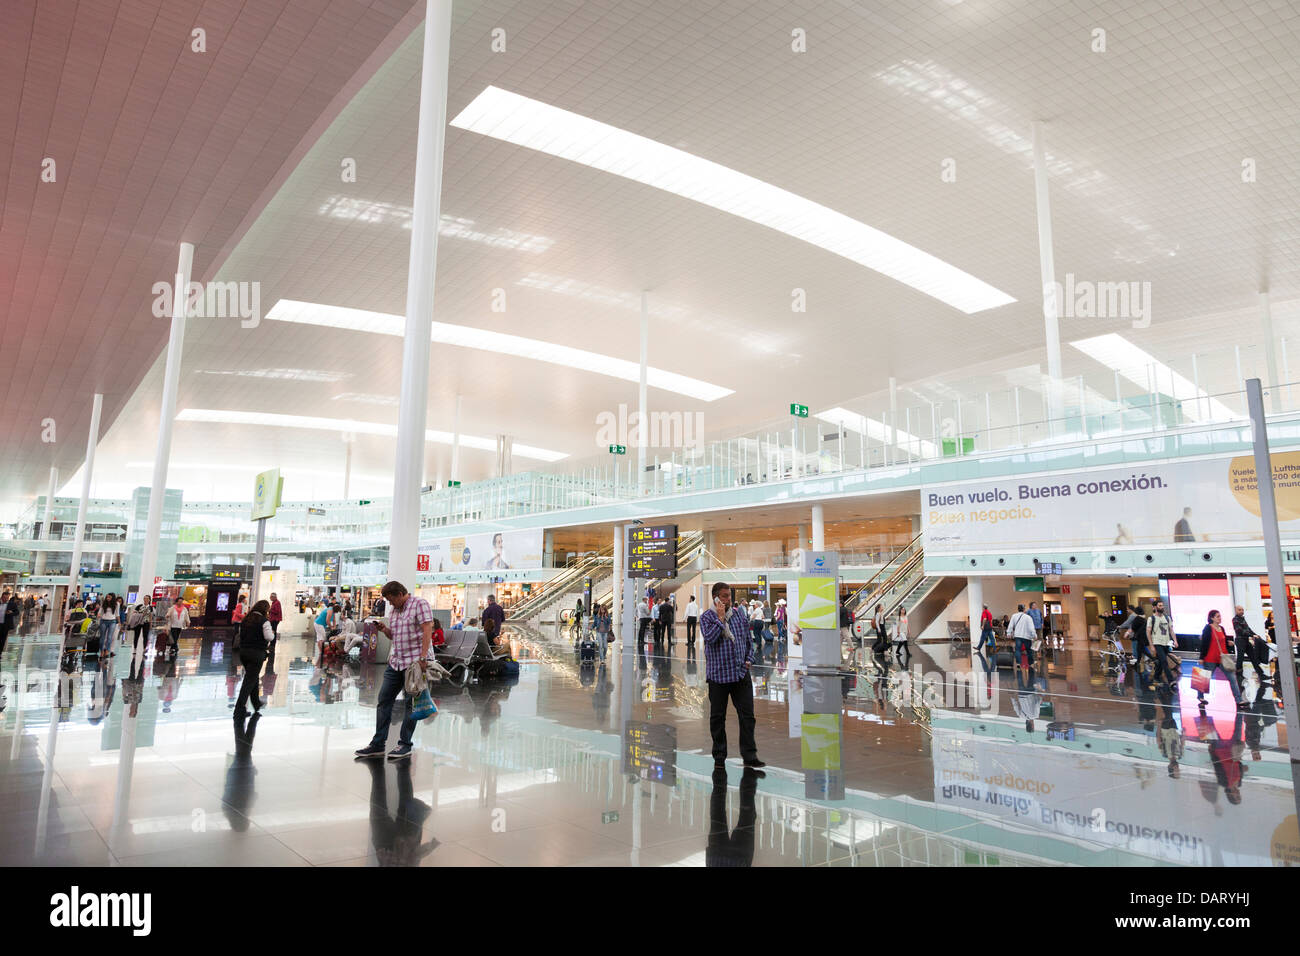 shopping area in departure hall of Barcelona Airport - Stock Image